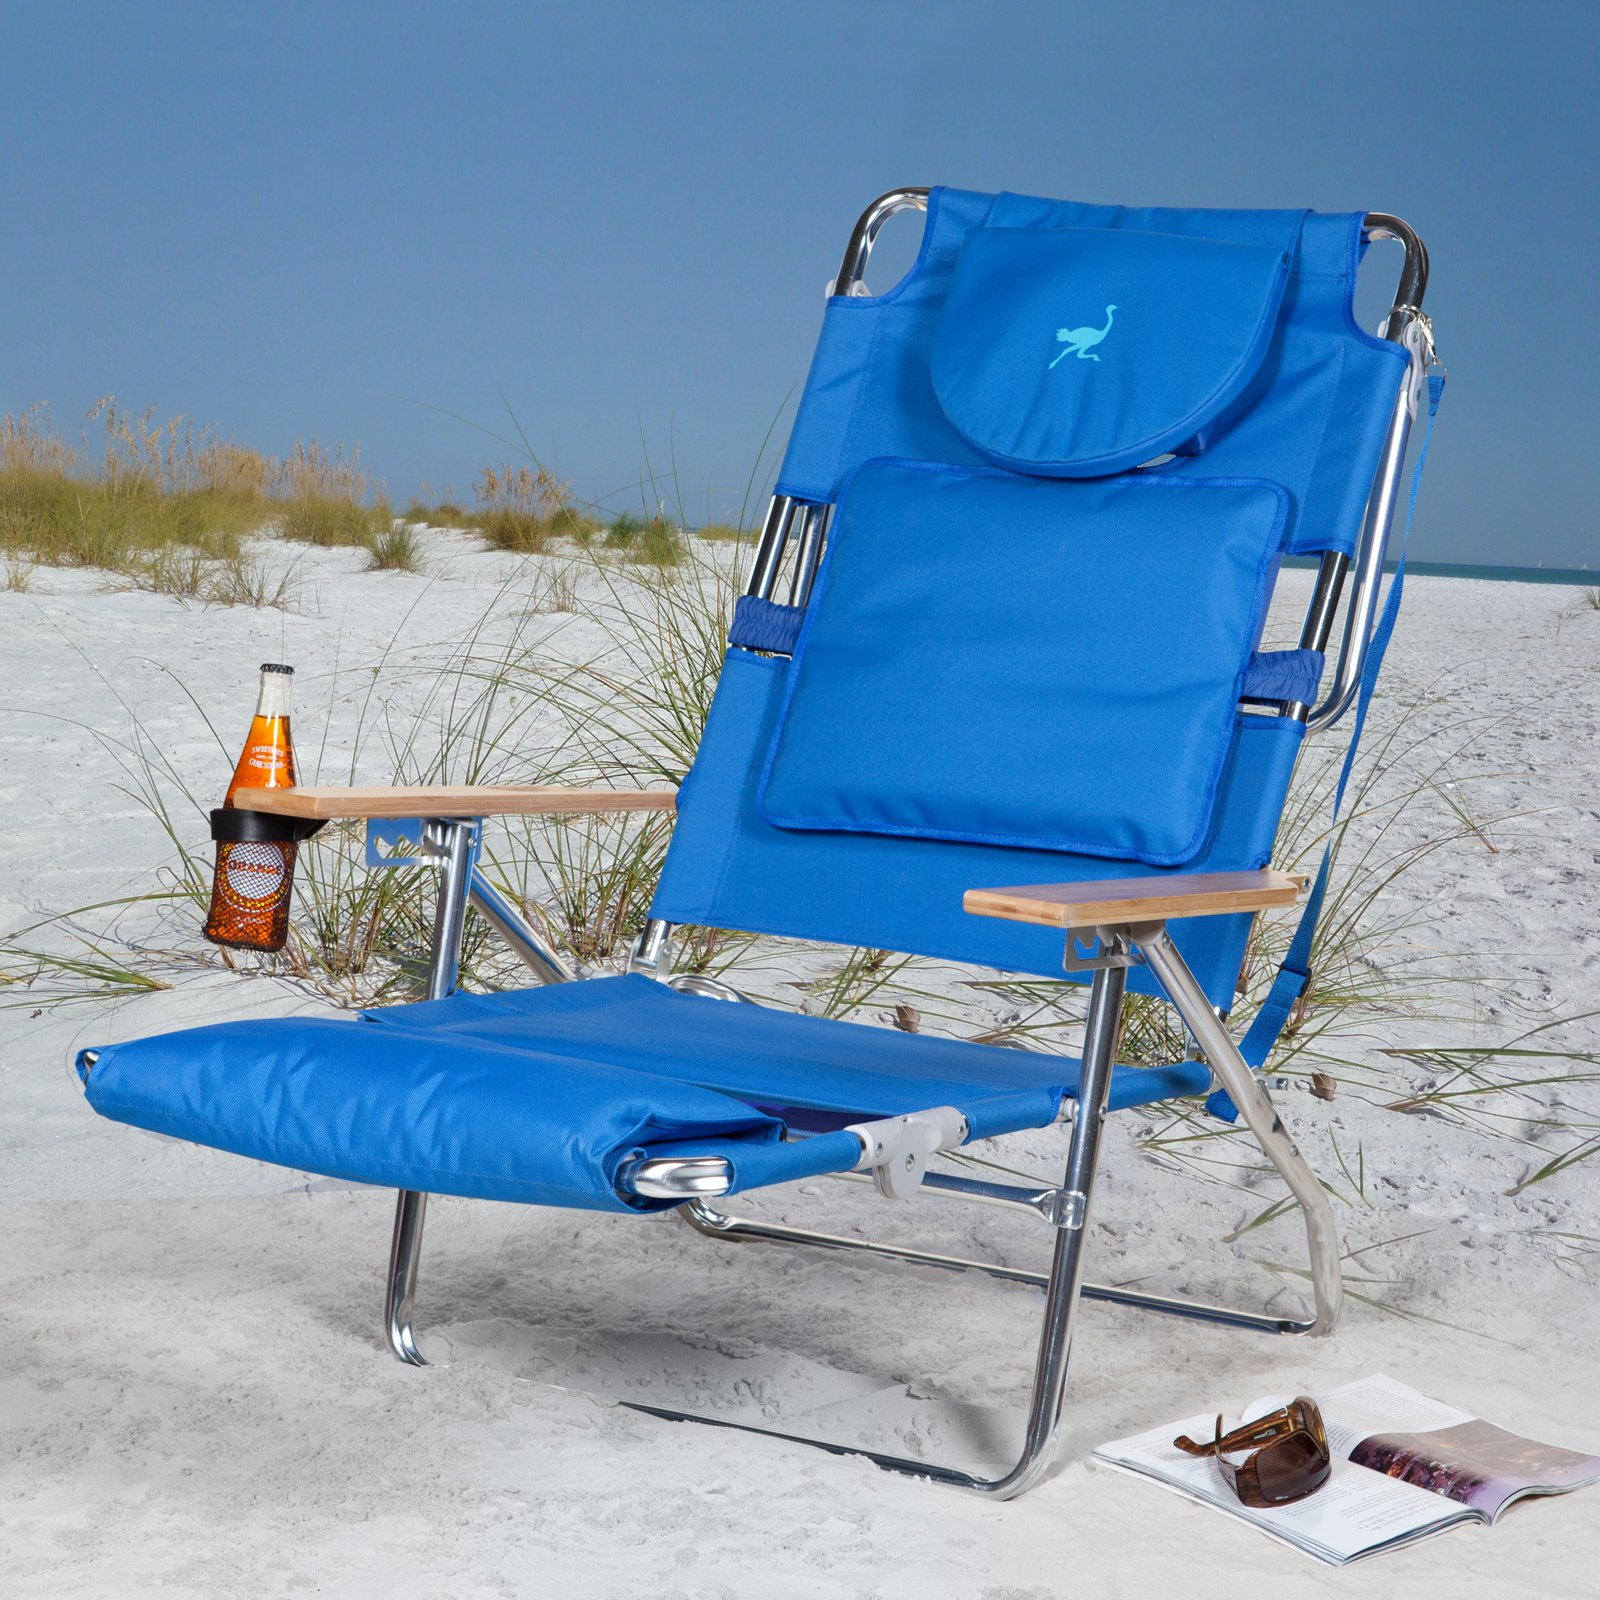 outdoor beach chairs best computer gaming chair deluxe padded ostrich sport 3 n 1 walmart com